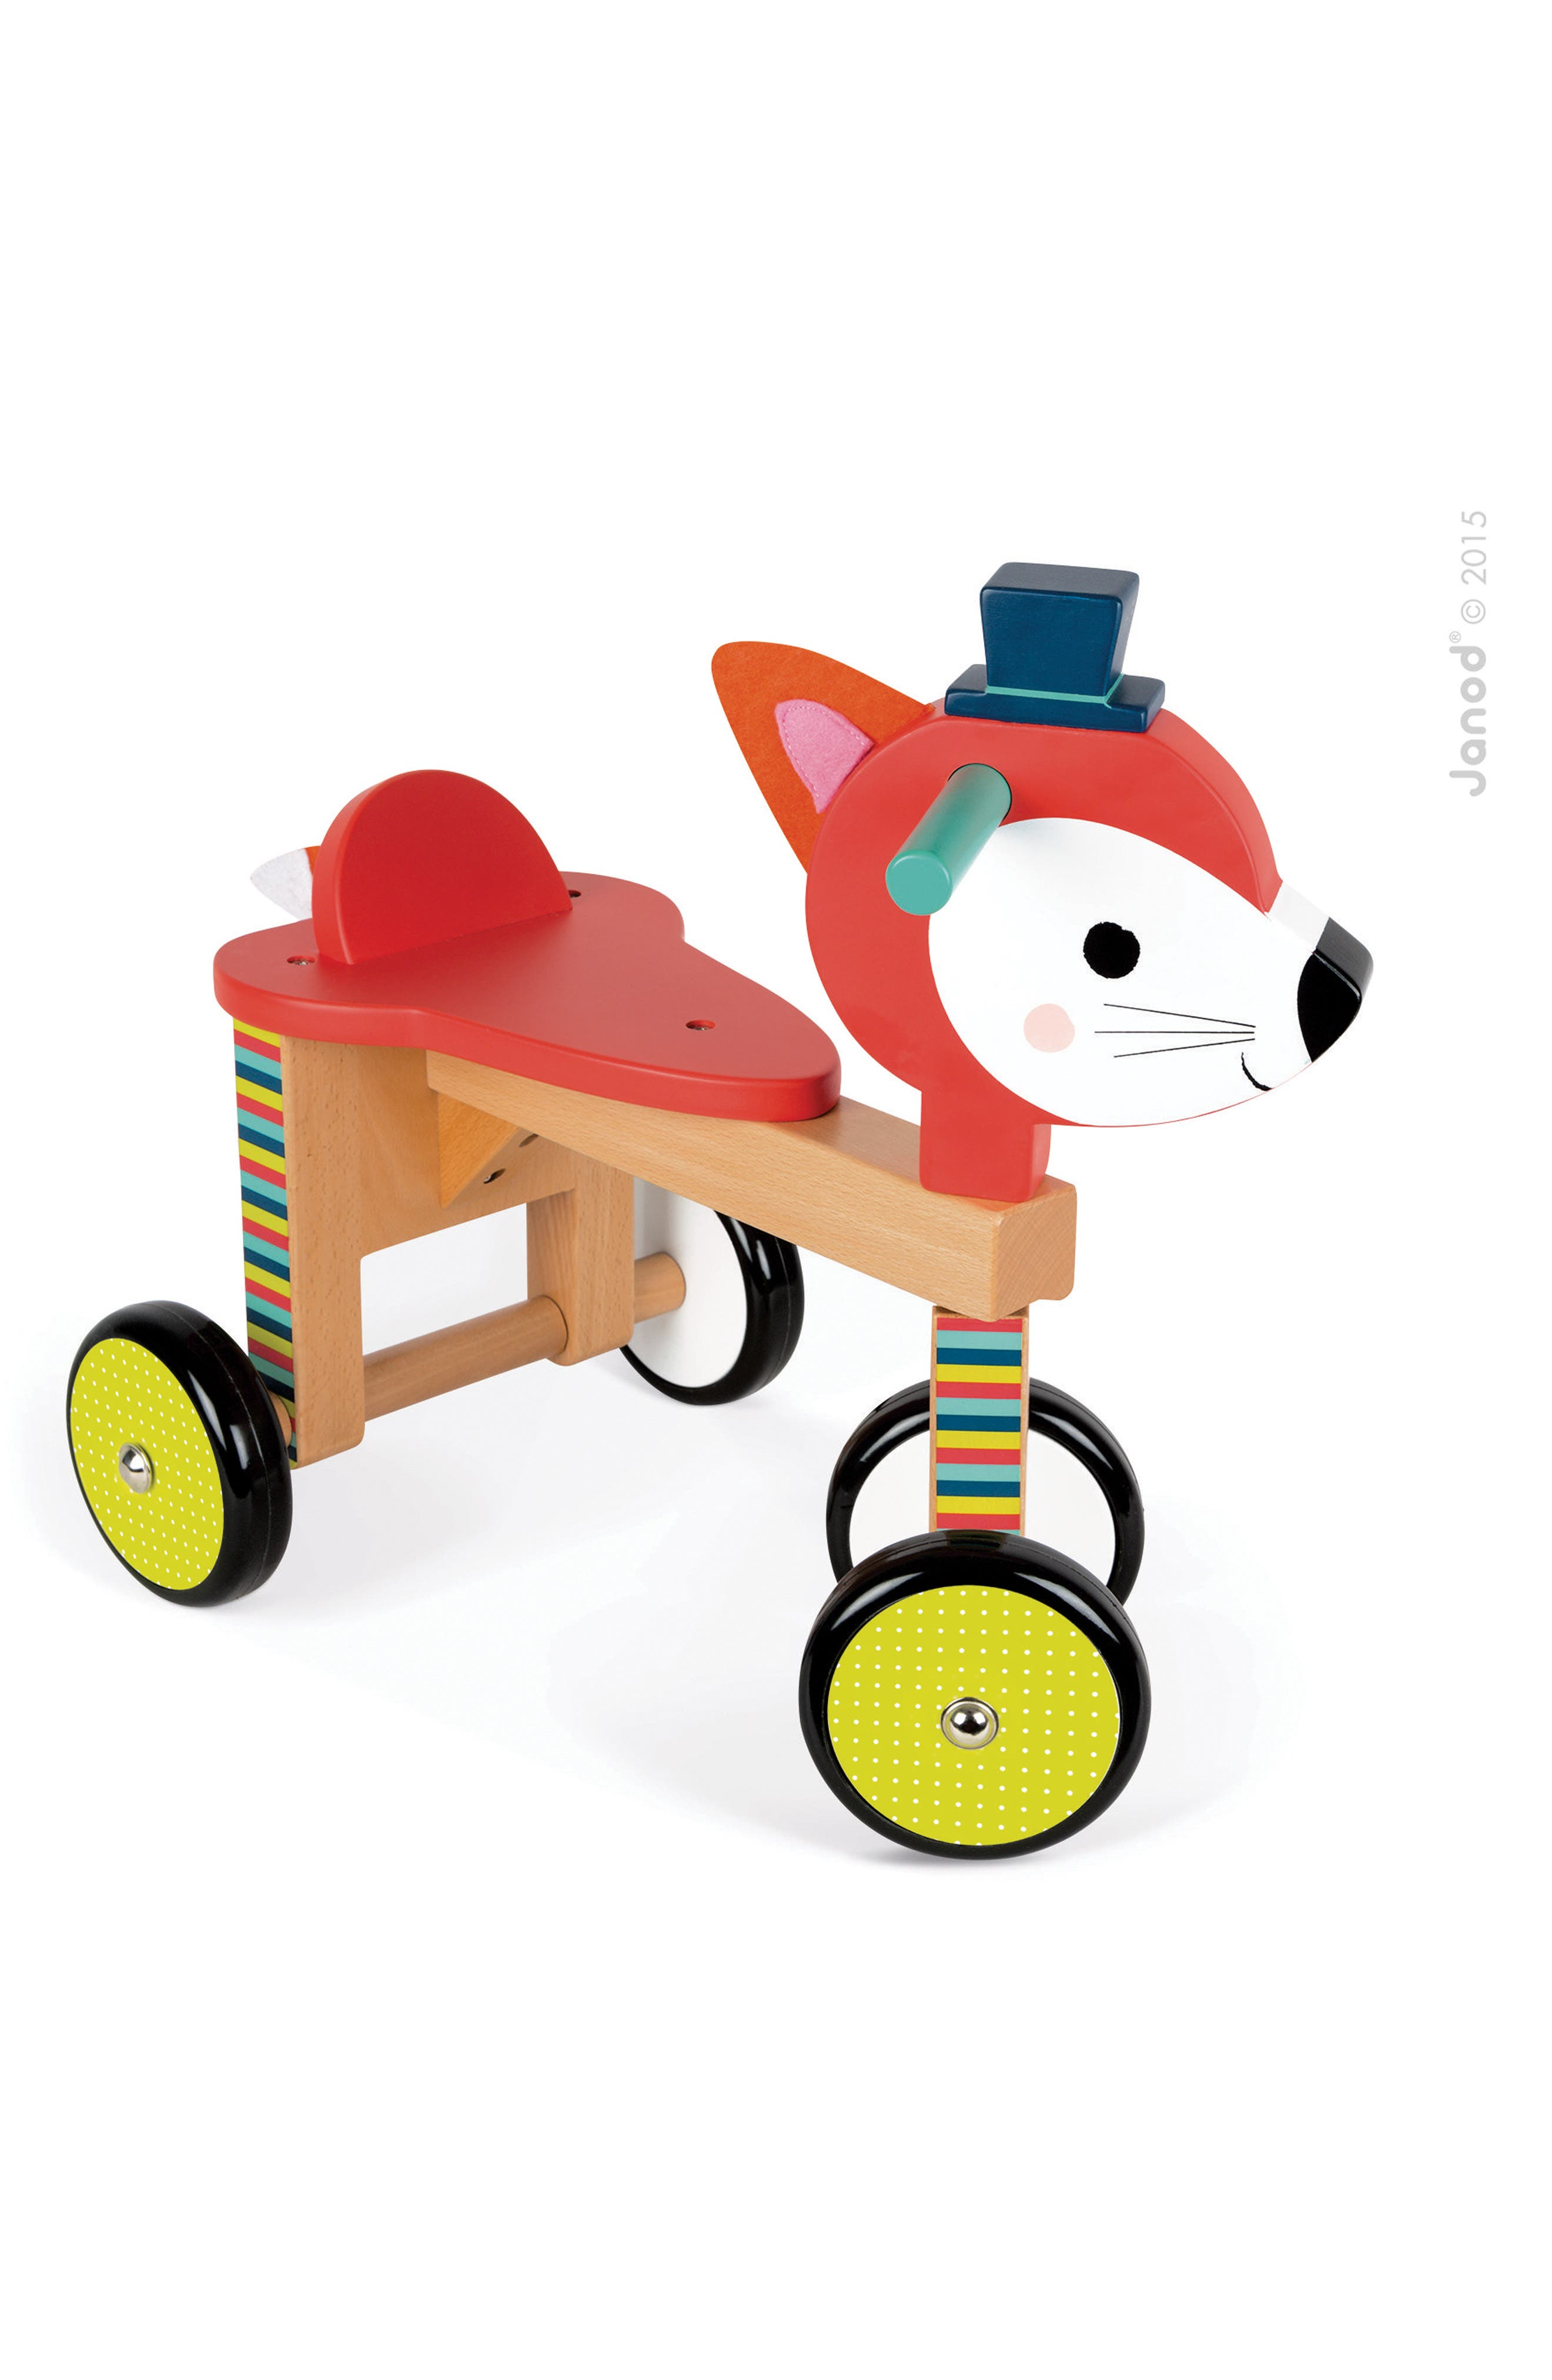 Carved from solid wood and outfitted with durable rubber wheels, this fox-shaped conveyance offers smooth, fun-filled rides from room to room. Style Name: Janod Fox Ride-On Toy. Style Number: 5486857. Available in stores.